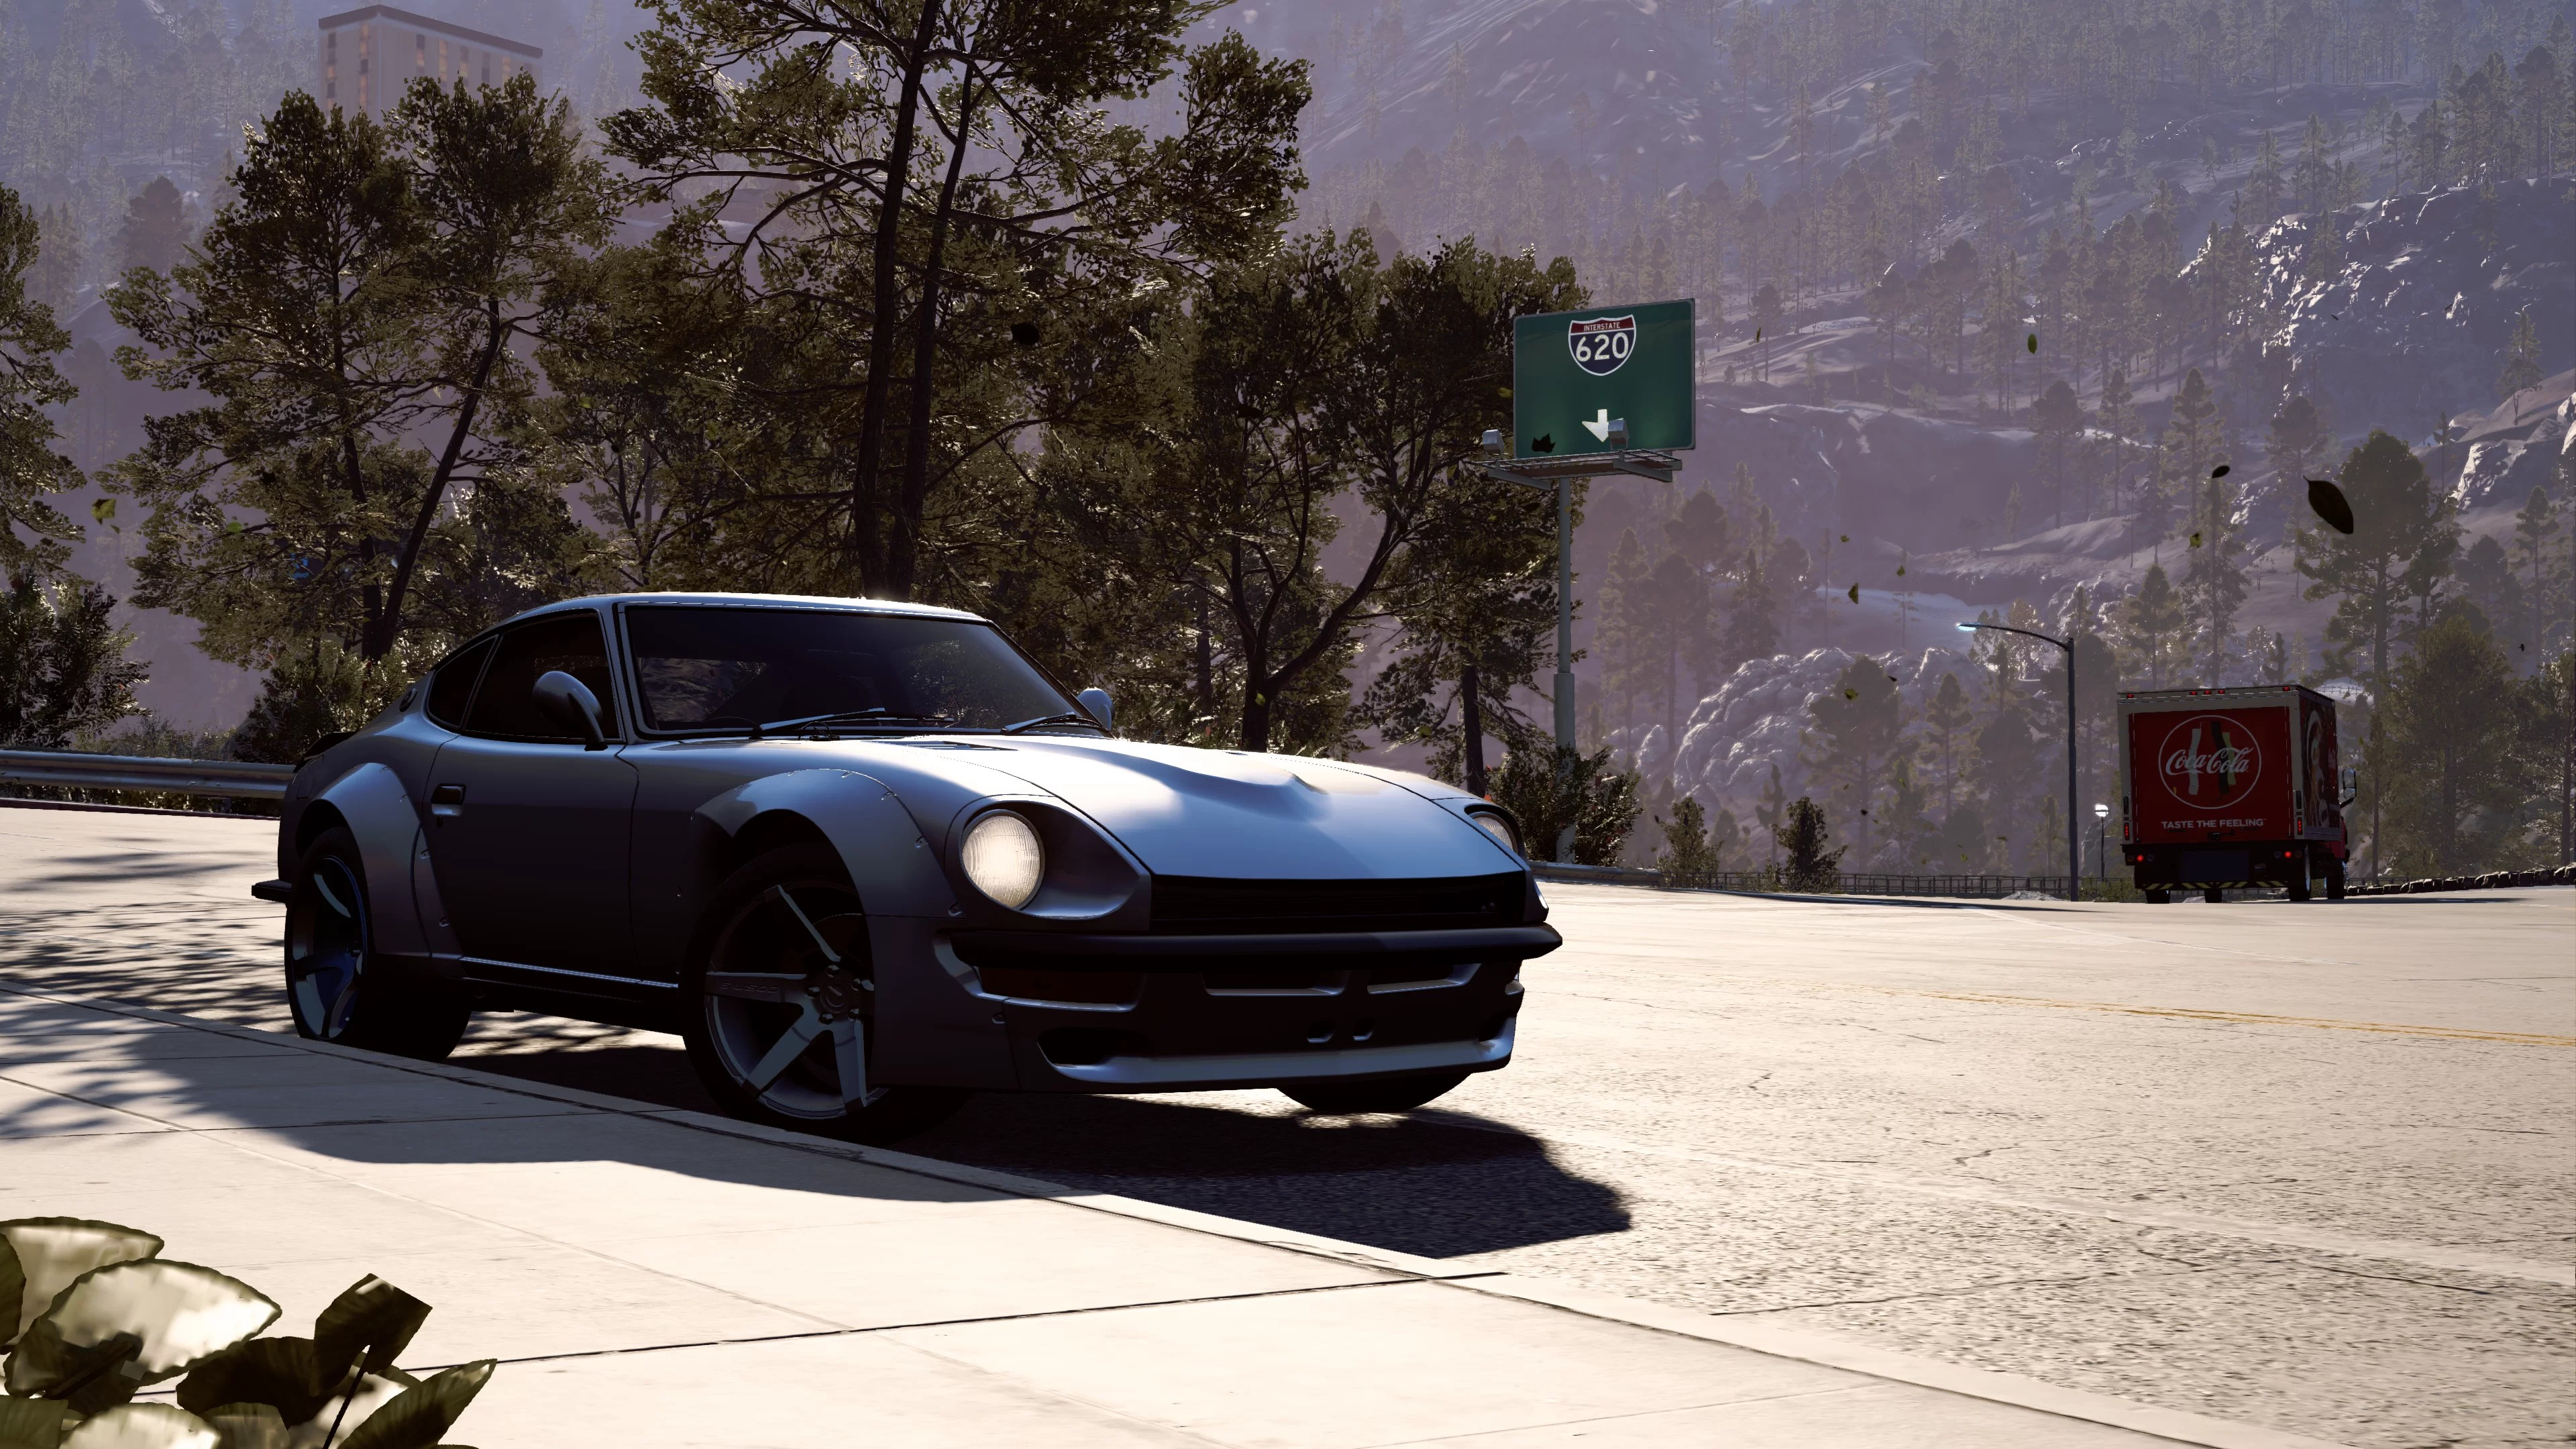 Need For Speed Payback Nissan 240zg Derelict Parts Location Guide